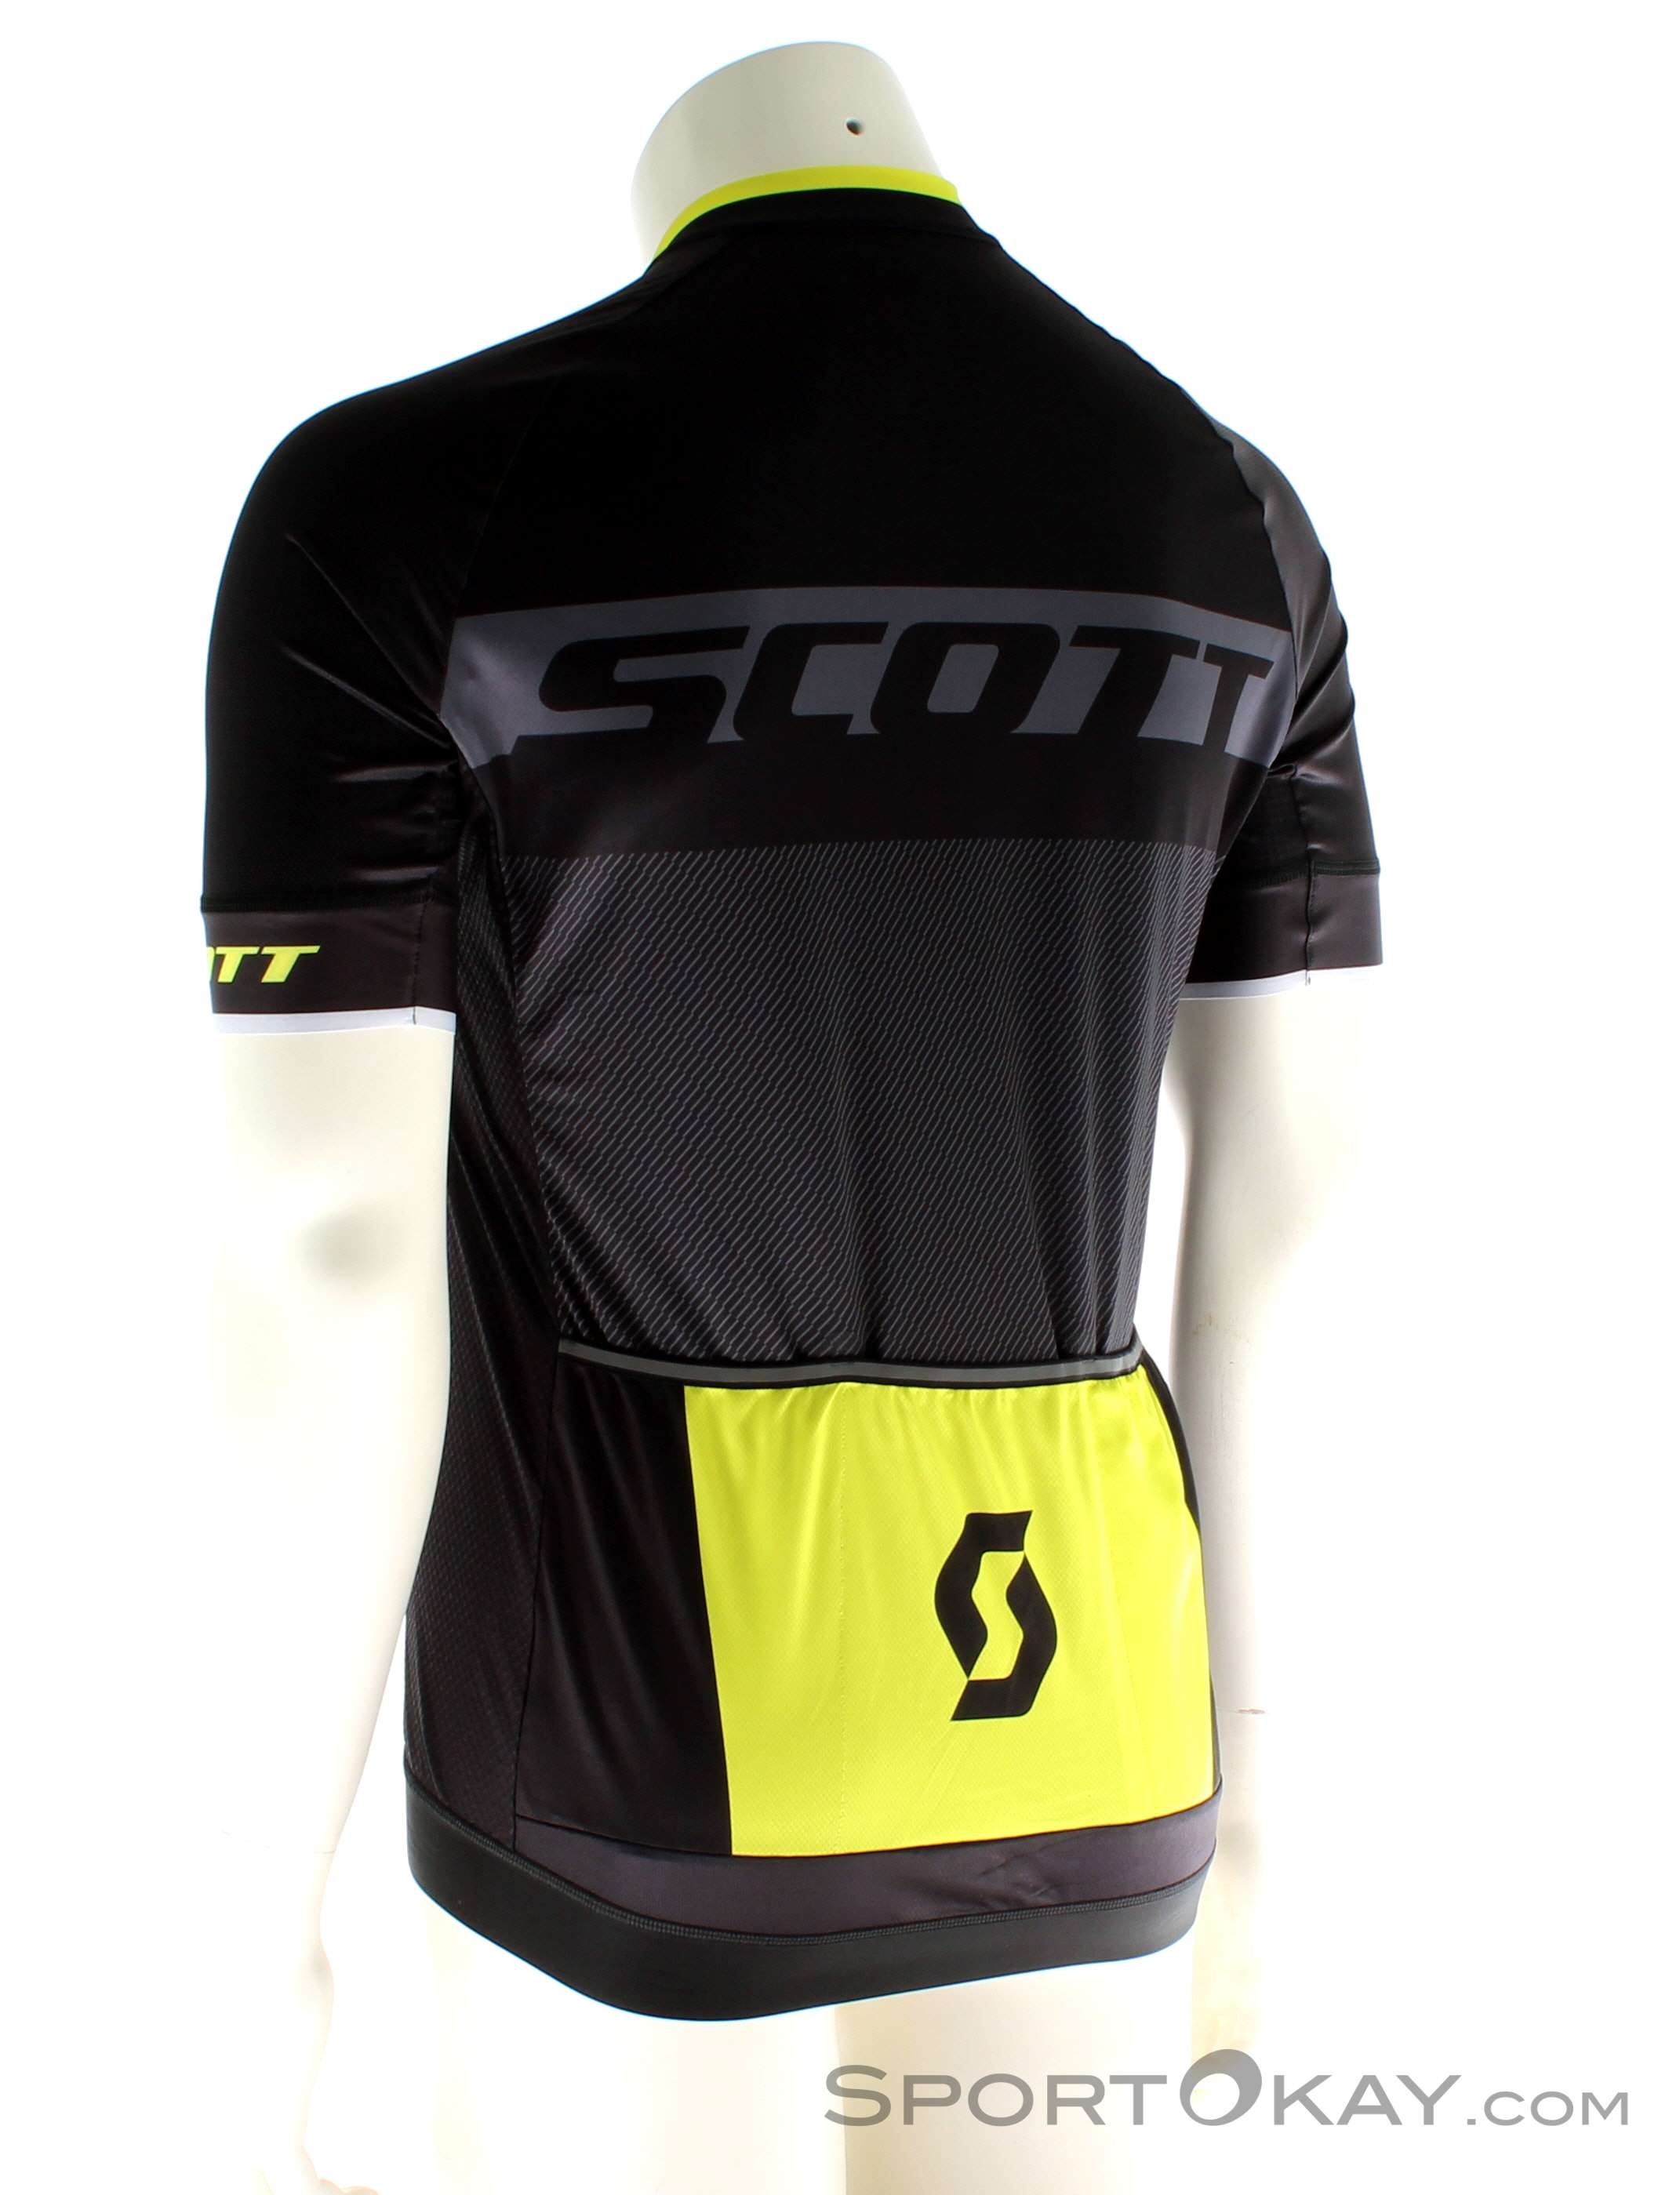 943ef0267 Scott RC Pro s sl Mens Biking Shirt - Shirts   T-Shirts - Bike ...